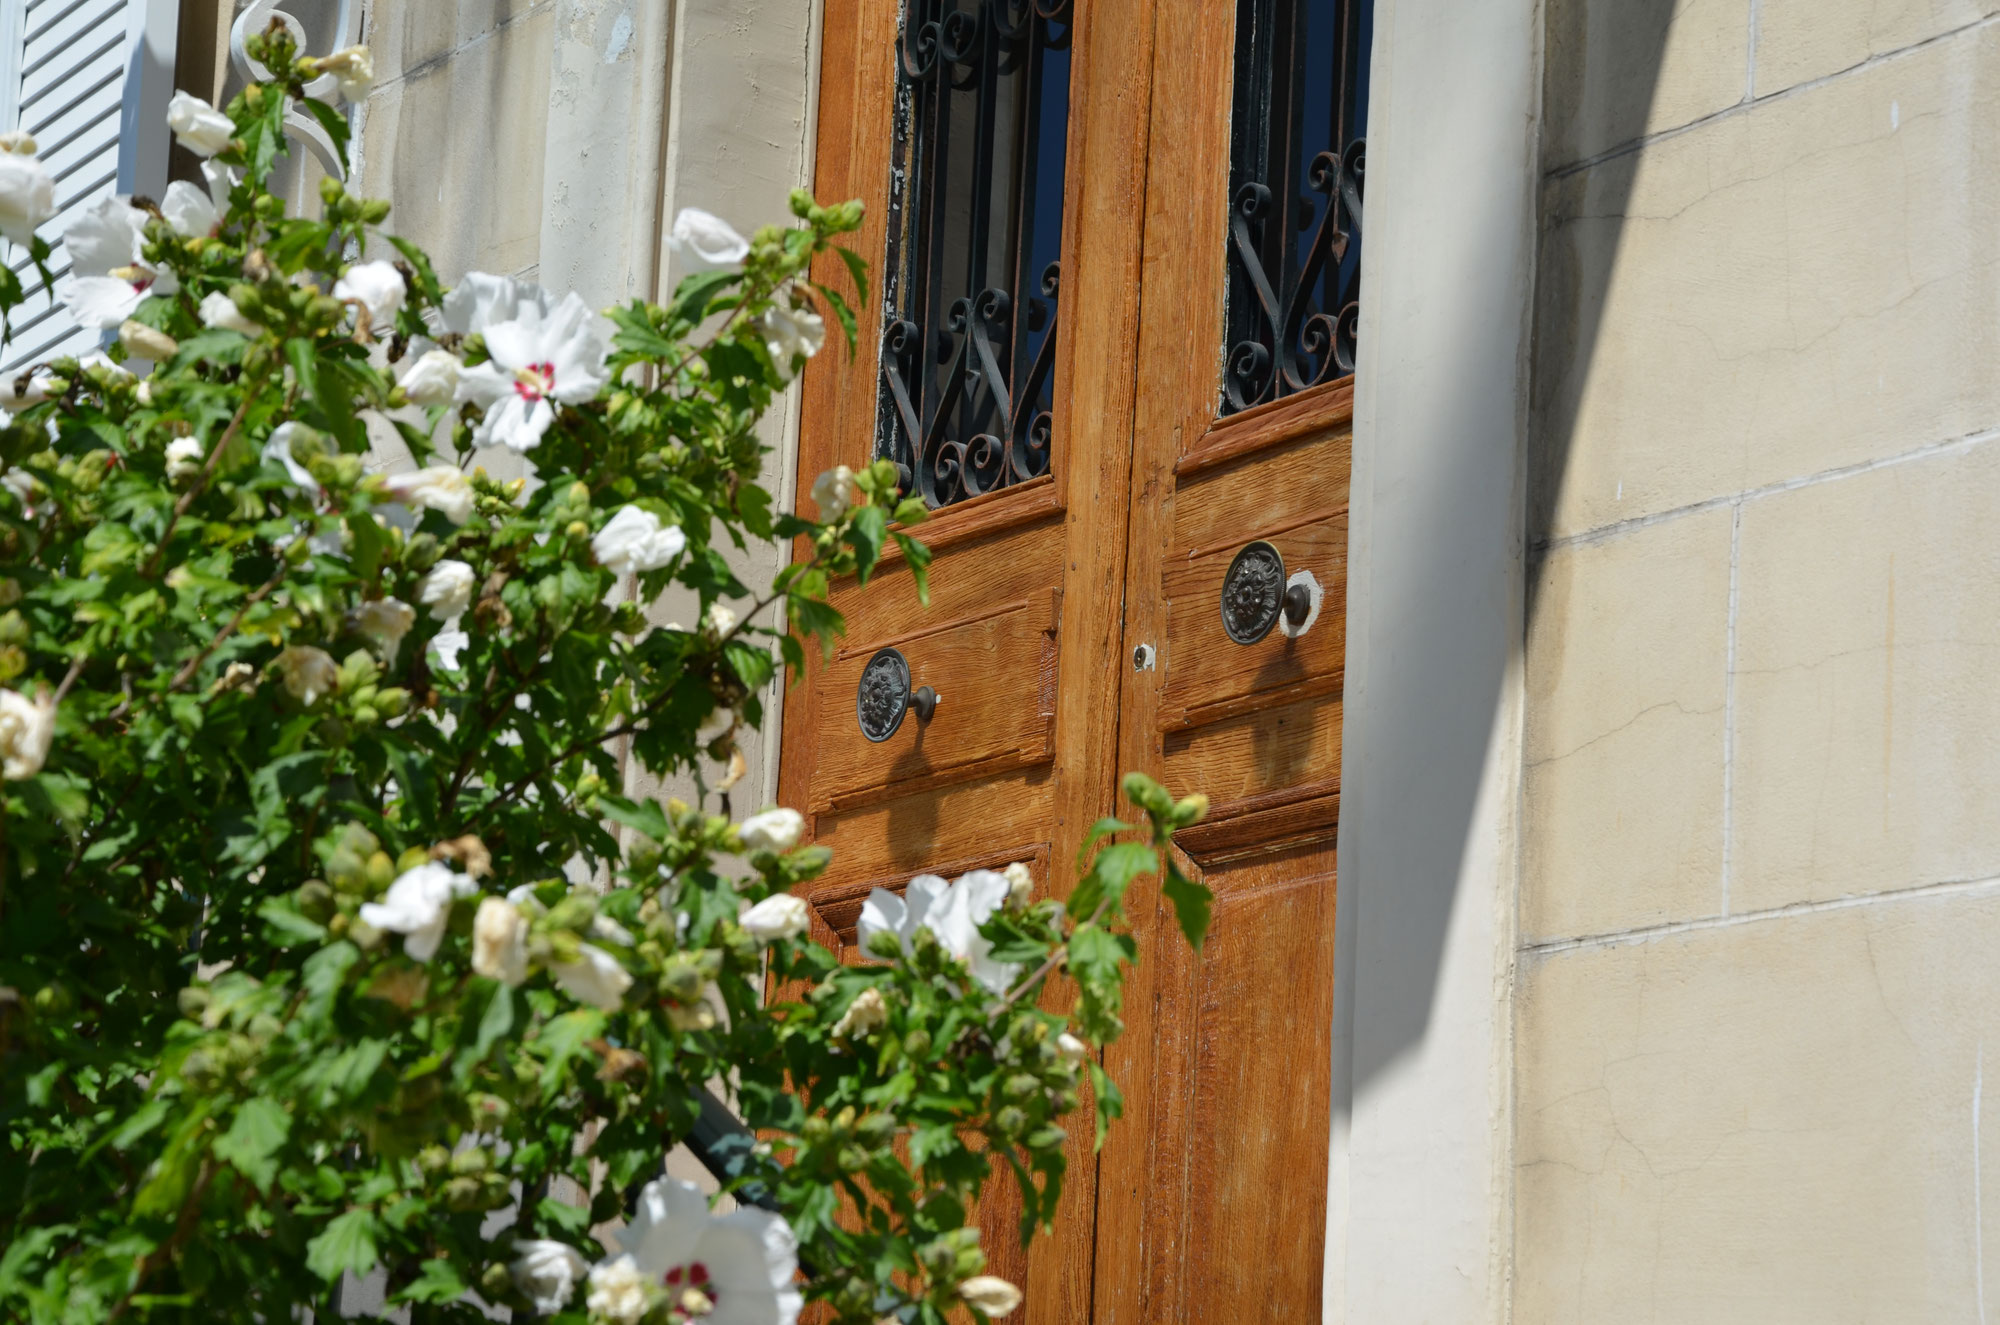 Contact magnaquies chambres d 39 hotes epernay champagne - Chambre d hotes region parisienne ...